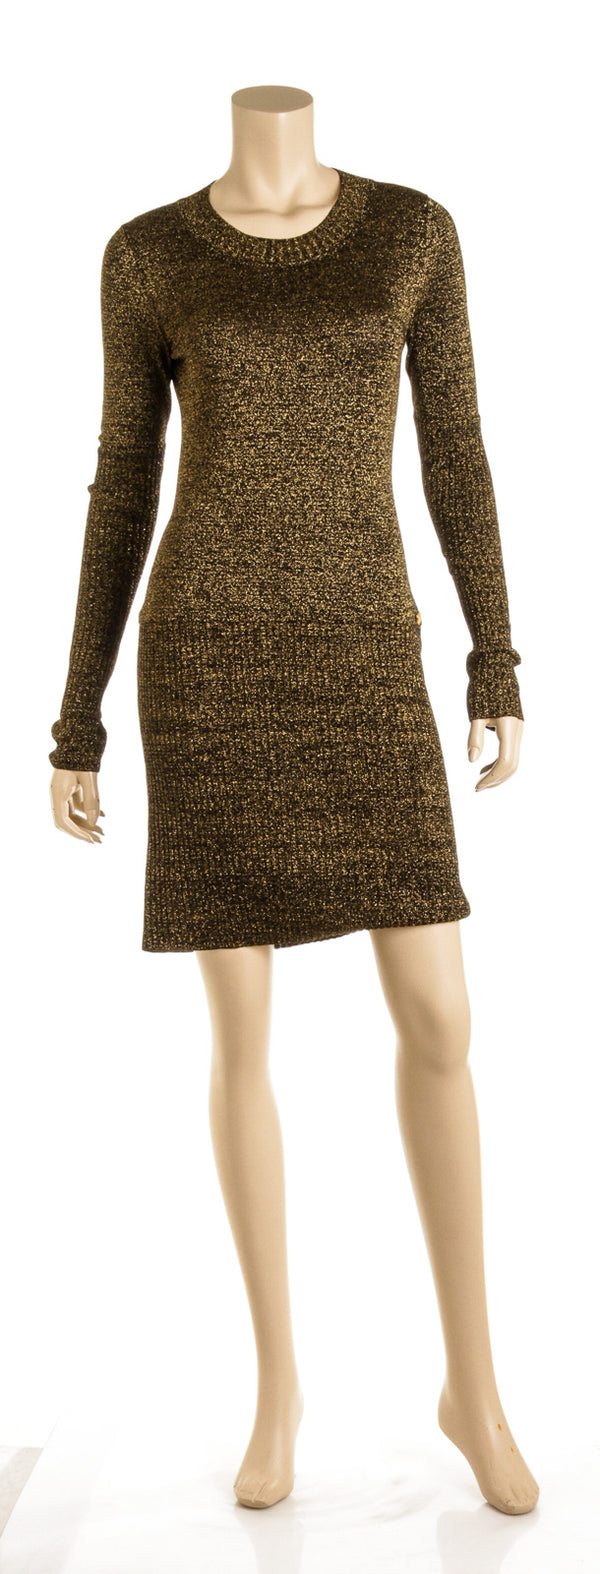 Chanel Gold & Black Metallic Knit Dress ( Size 36 )